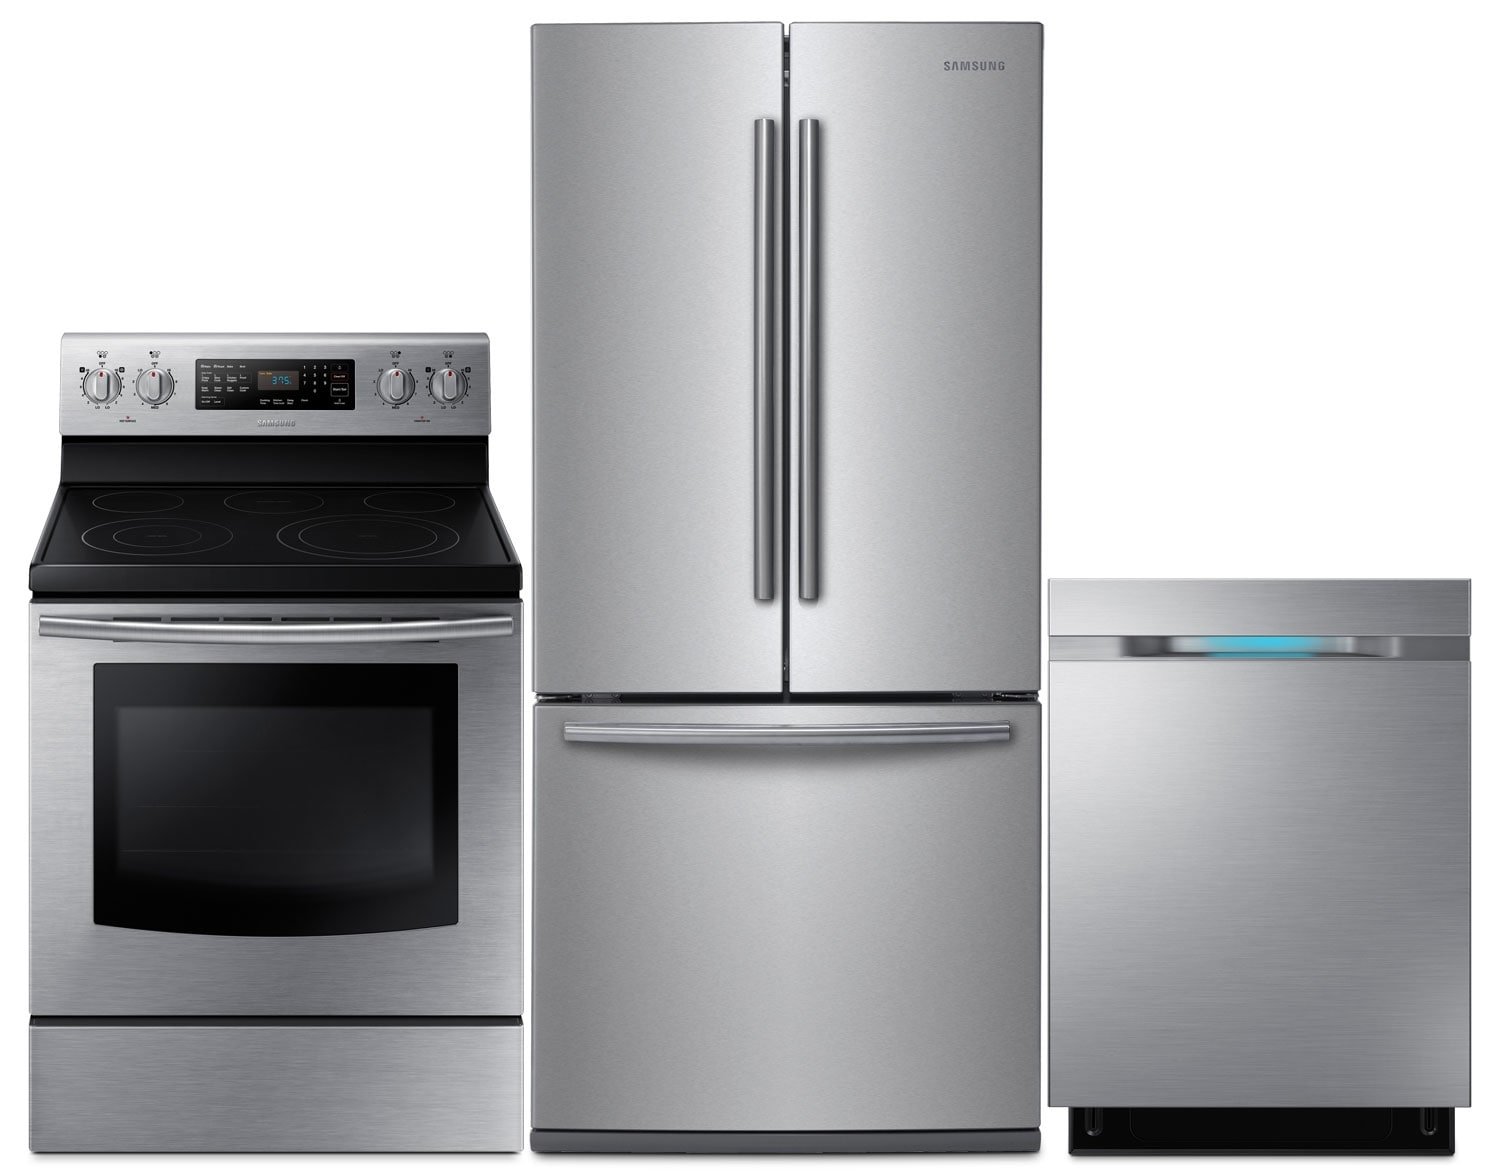 Cooking Products - Samsung 22 Cu. Ft. Refrigerator, 5.9 Cu. Ft. Electric Range and Built-In Dishwasher